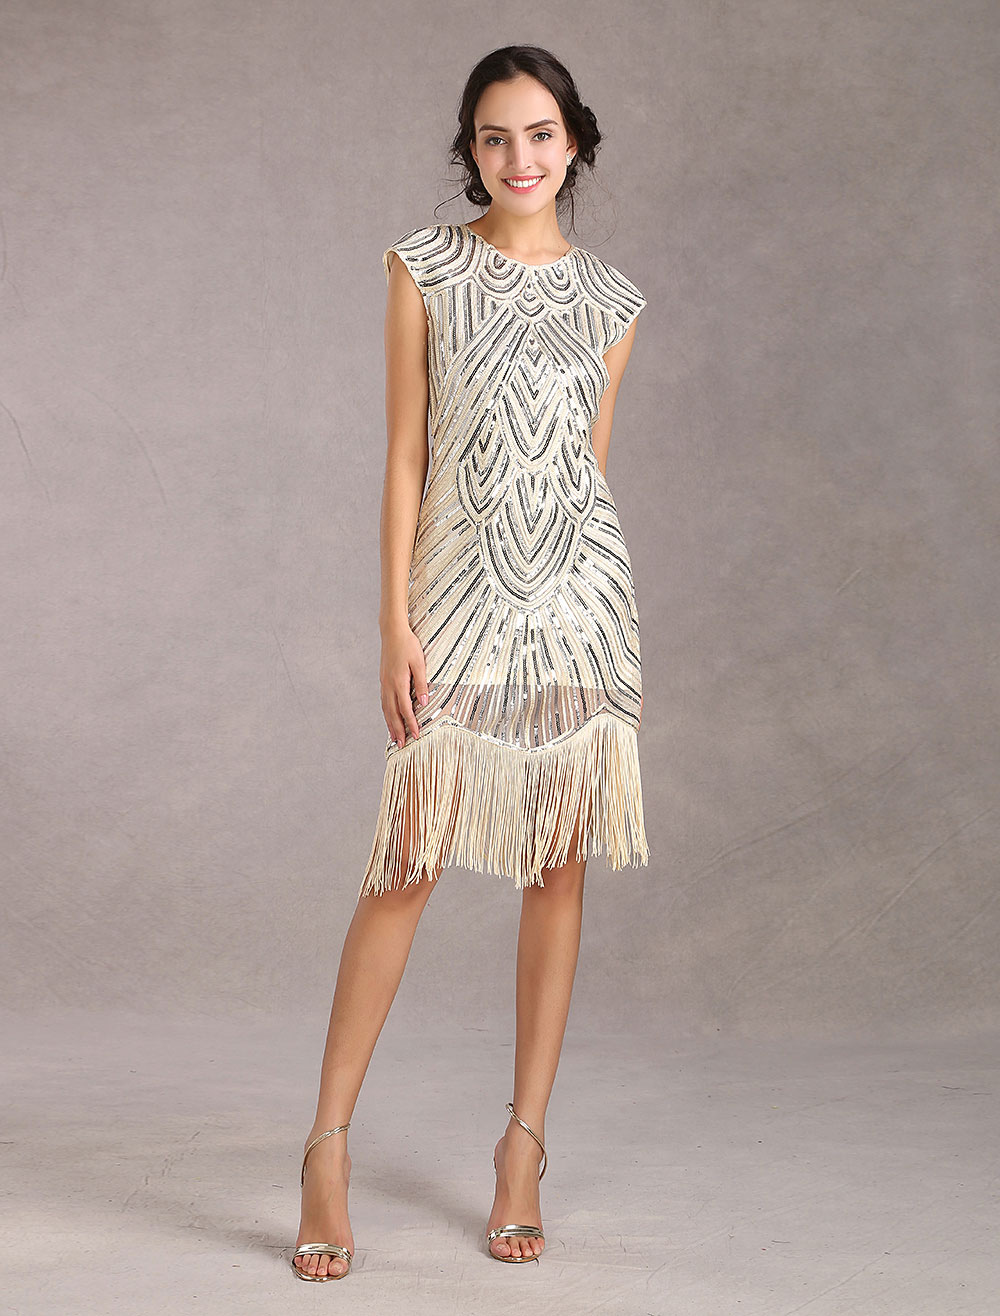 3c33fa258d9 1920s Flapper Dress Great Gatsby Vintage Costume Women s Sequin Tassels  Apricot Dress Halloween-No.